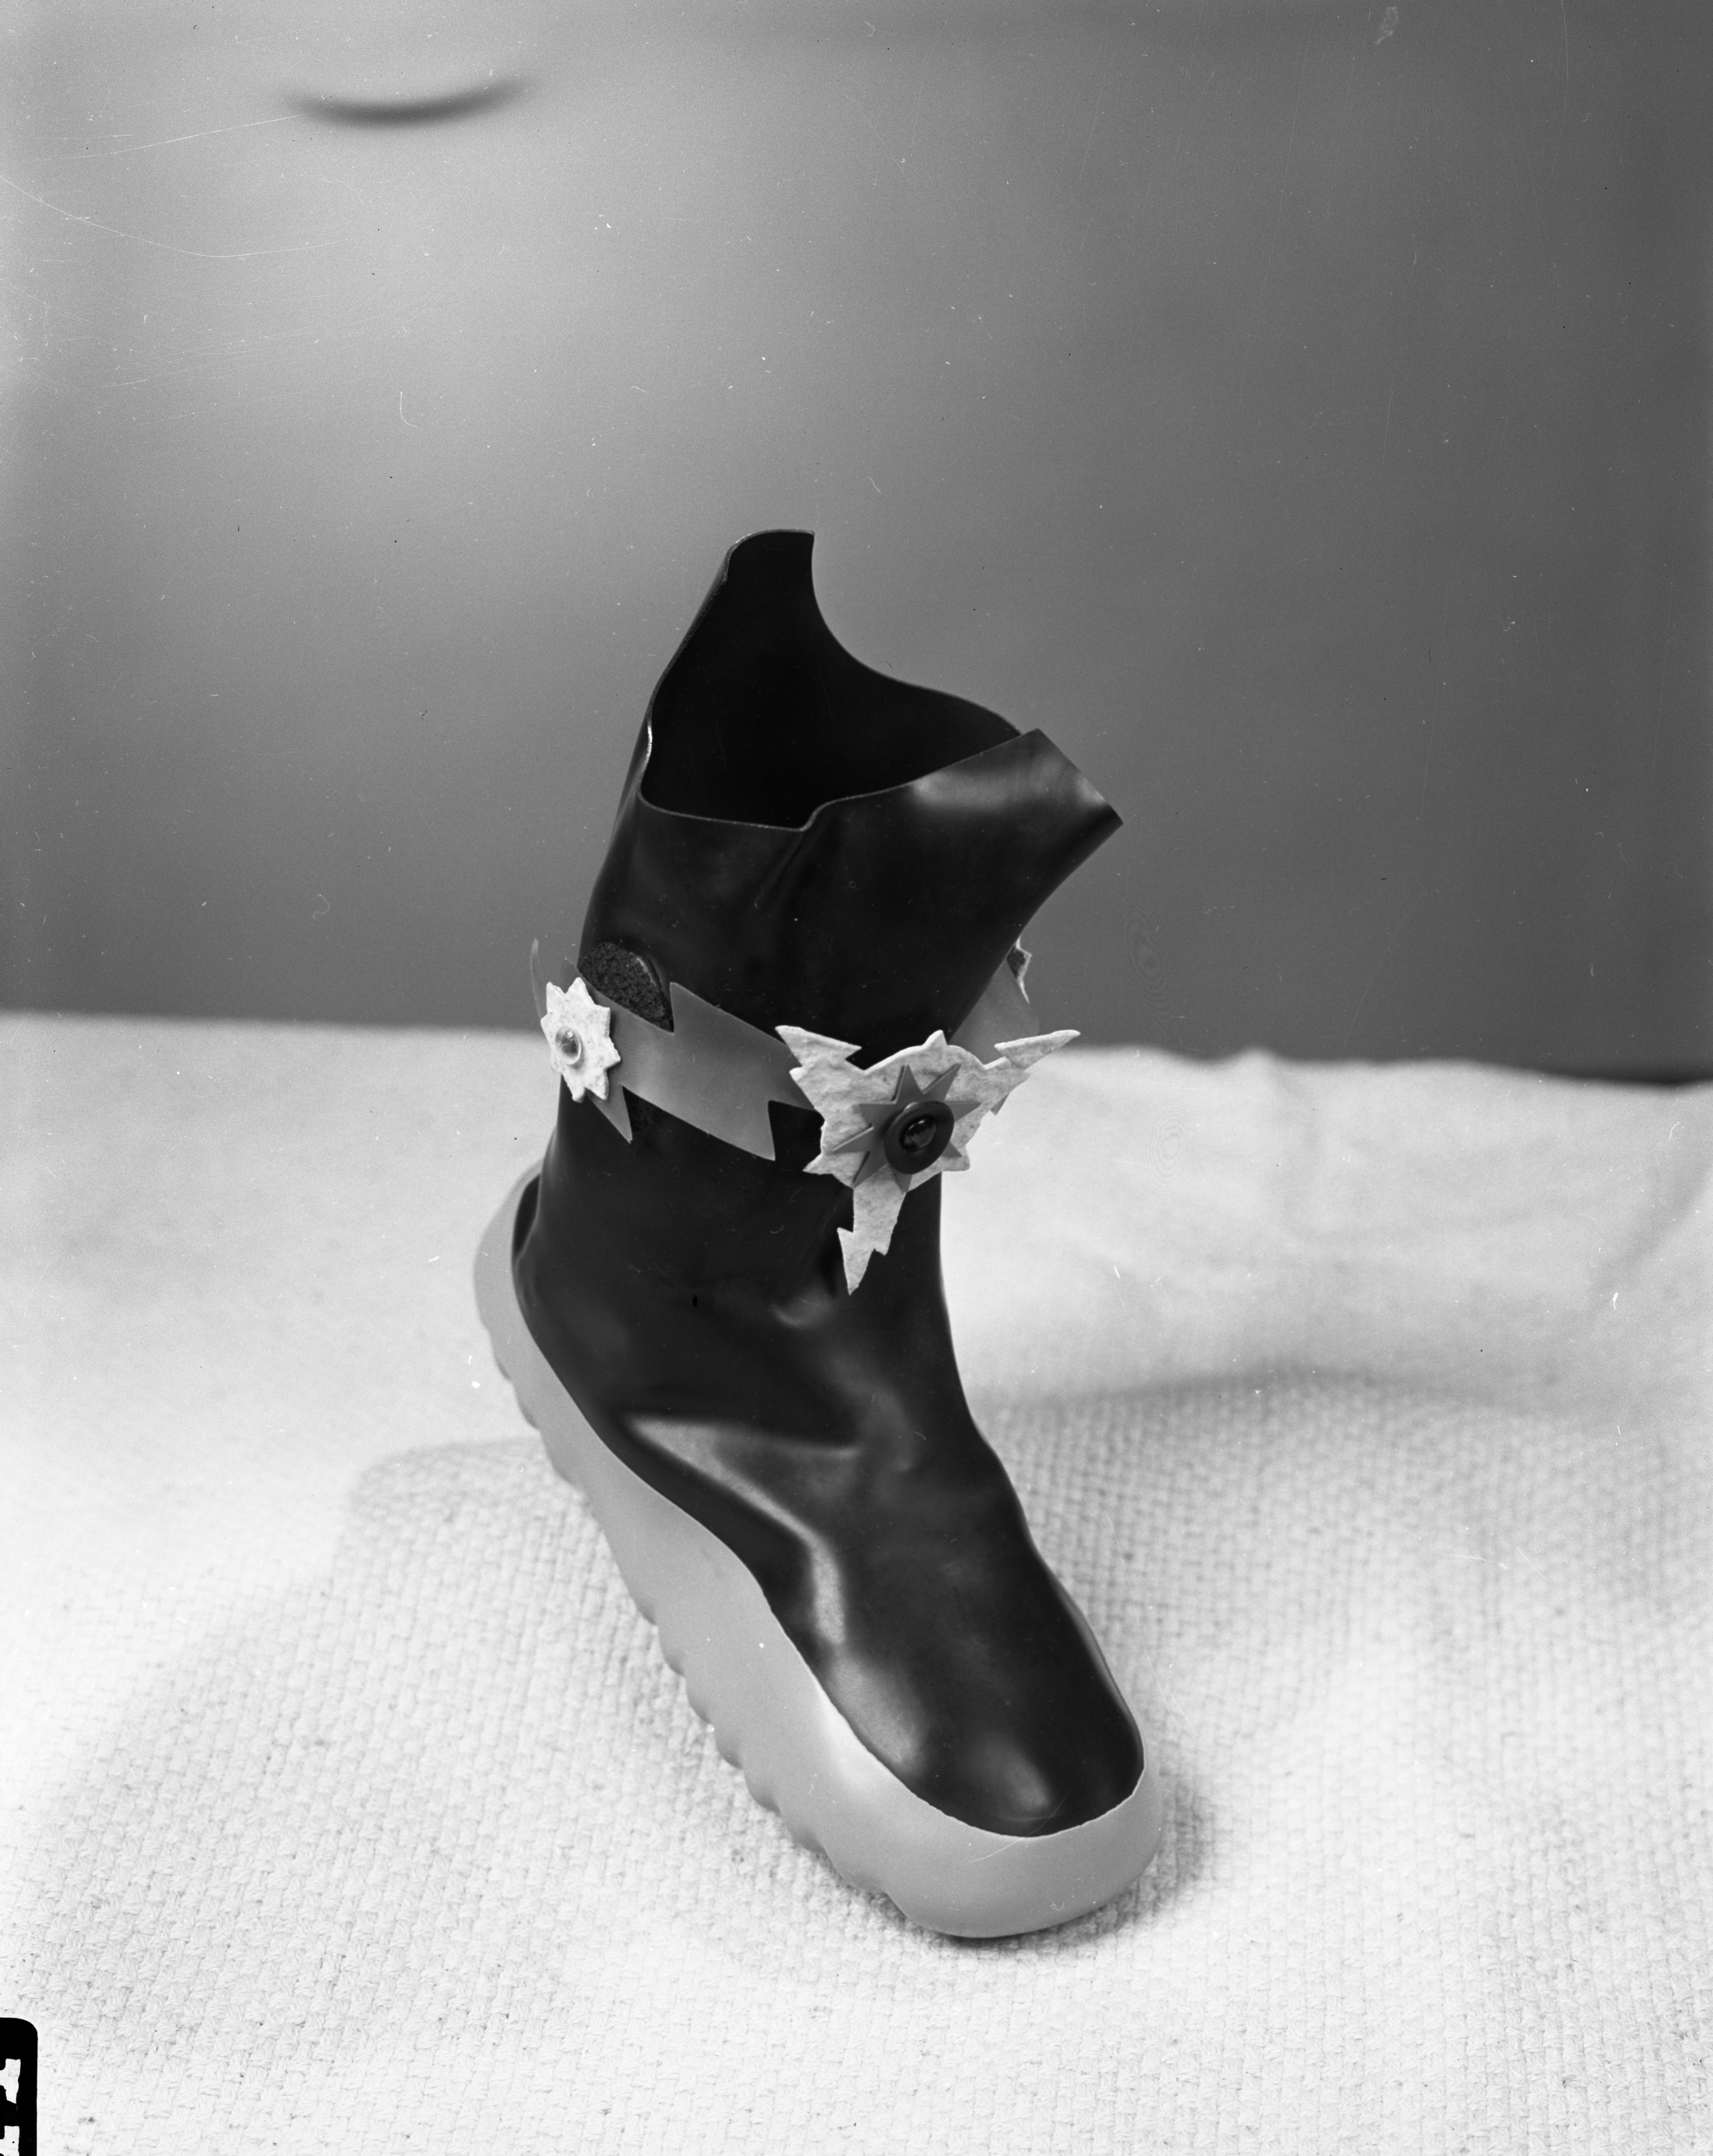 Women's Winter Boots With Creative Accents at Mast Shoe Store, October 1955 image